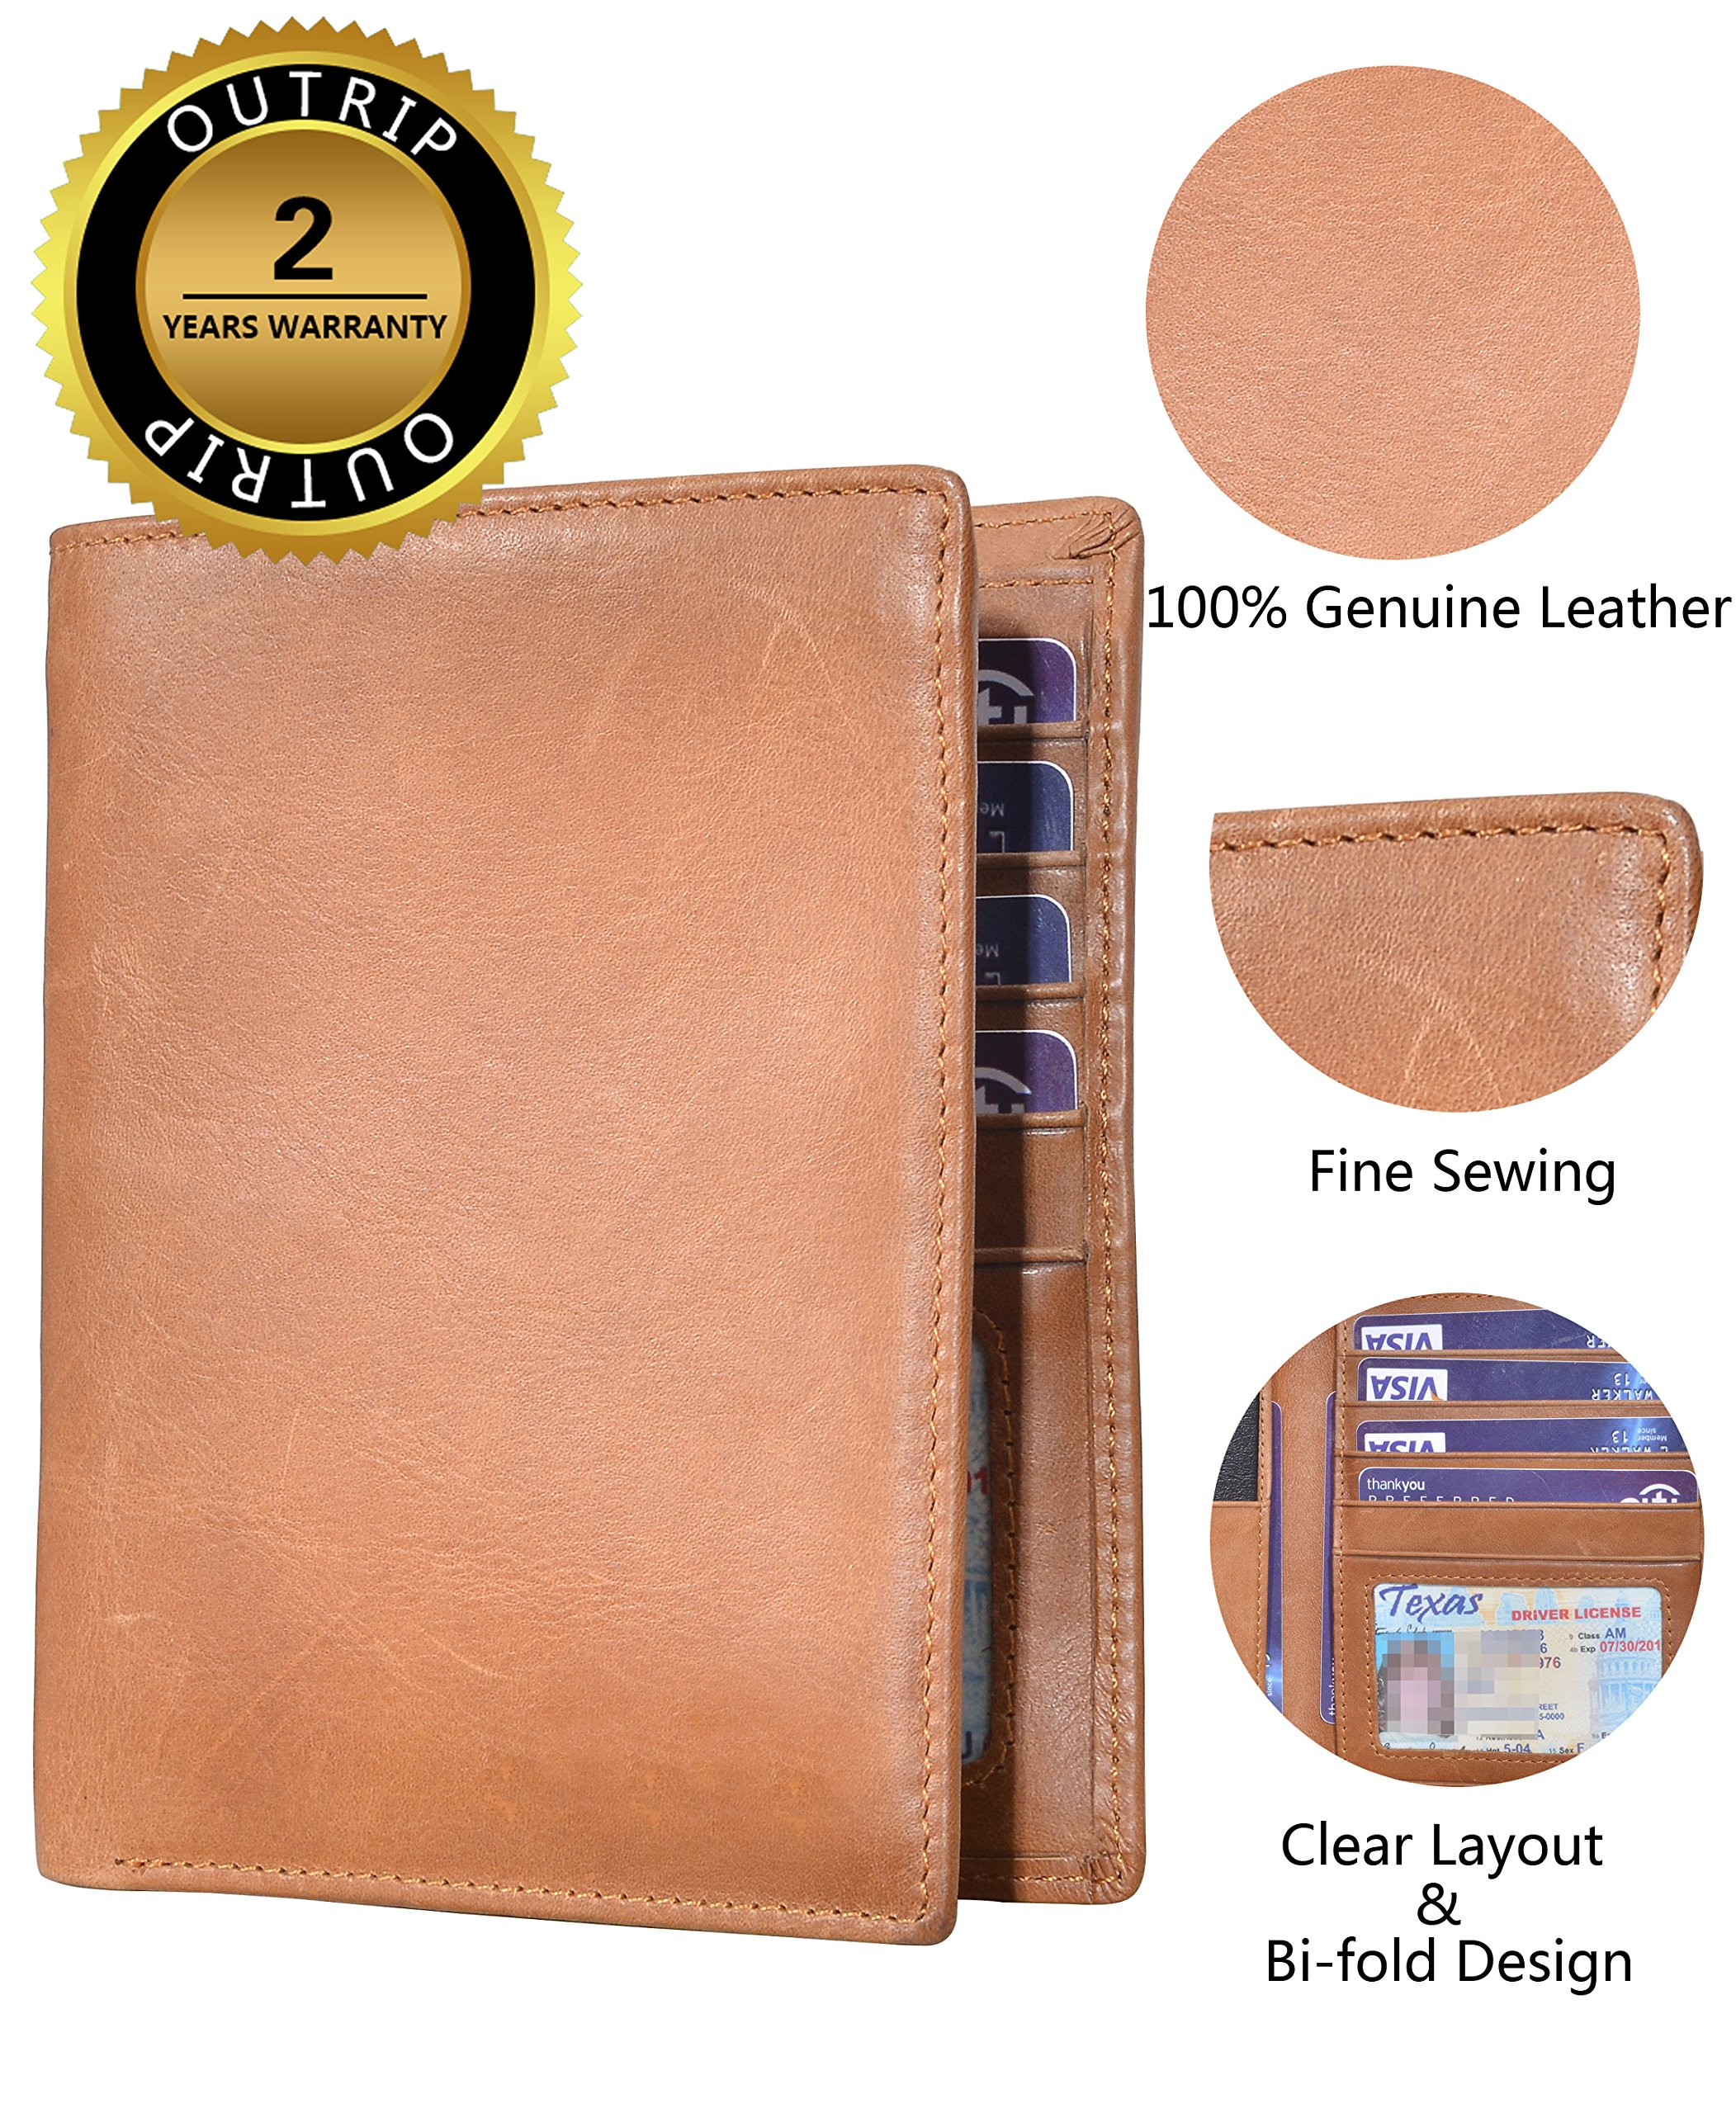 Outrip Genuine Leather Passport Wallet RFID Blocking Travel Card/Passport Holder (Brown) by Outrip (Image #6)